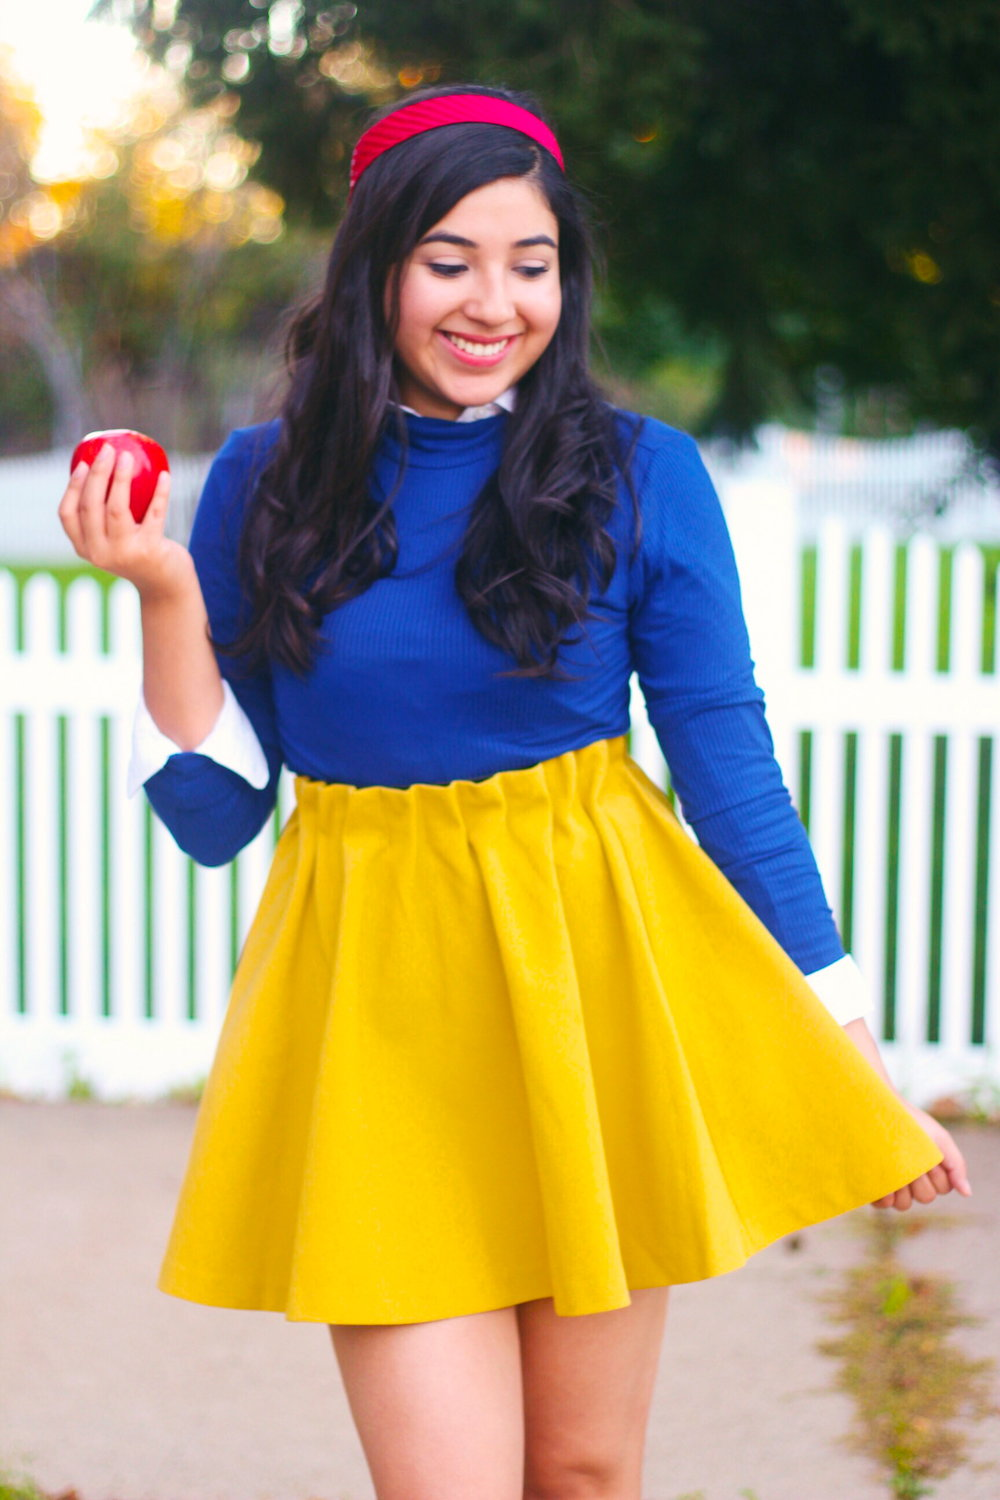 HALLOWEEN COSTUME, COSTUME, HALLOWEEN, DIY HALLOWEEN COSTUME, DIY COSTUME, DIY, SNOW WHITE, DISNEY, DISNEY HALLOWEEN COSTUME, SNOW WHITE HALLOWEEN COSTUME, DIY DISNEY HALLOWEEN COSTUME, DIY SNOW WHITE HALLOWEEN COSTUME, SPOOKY, CUTE HALLOWEEN COSTUME, CUTE DISNEY HALLOWEEN COSTUMES, EASY HALLOWEEN COSTUMES, EASY COSTUME, EASY DIY COSTUME, EASY DIY HALLOWEEN COSTUME, CUTE AND EASY HALLOWEEN COSTUME, EASY DISNEY HALLOWEEN COSTUME, COUPLE COSTUME, DIY COUPLE COSTUME, DISNEY DIY COUPLE COSTUME, WOMENS COSTUMES, DIY WOMENS COSTUMES, GIRLS COSTUMES, DIY GIRLS COSTUMES, EASY DIY GIRLS COSTUMES, EASY GIRLS COSTUMES, EASY WOMENS COSTUMES, EASY DIY WOMENS COSTUMES, TEEN COSTUMES, EASY TEEN COSTUMES, EASY DIY TEEN COSTUMES, QUICK AND EASY TEEN COSTUMES, QUICK AND EASY WOMENS COSTUMES, QUICK AND EASY GIRLS COSTUMES, LAST MINUTE DIY COSTUMES, LAST MINUTE DIY HALLOWEEN COSTUMES, DIY WOMENS HALLOWEEN COSTUMES, DIY WOMEN HALLOWEEN COSTUMES, DIY TEEN HALLOWEEN COSTUMES, DIY GIRL HALLOWEEN COSTUMES,